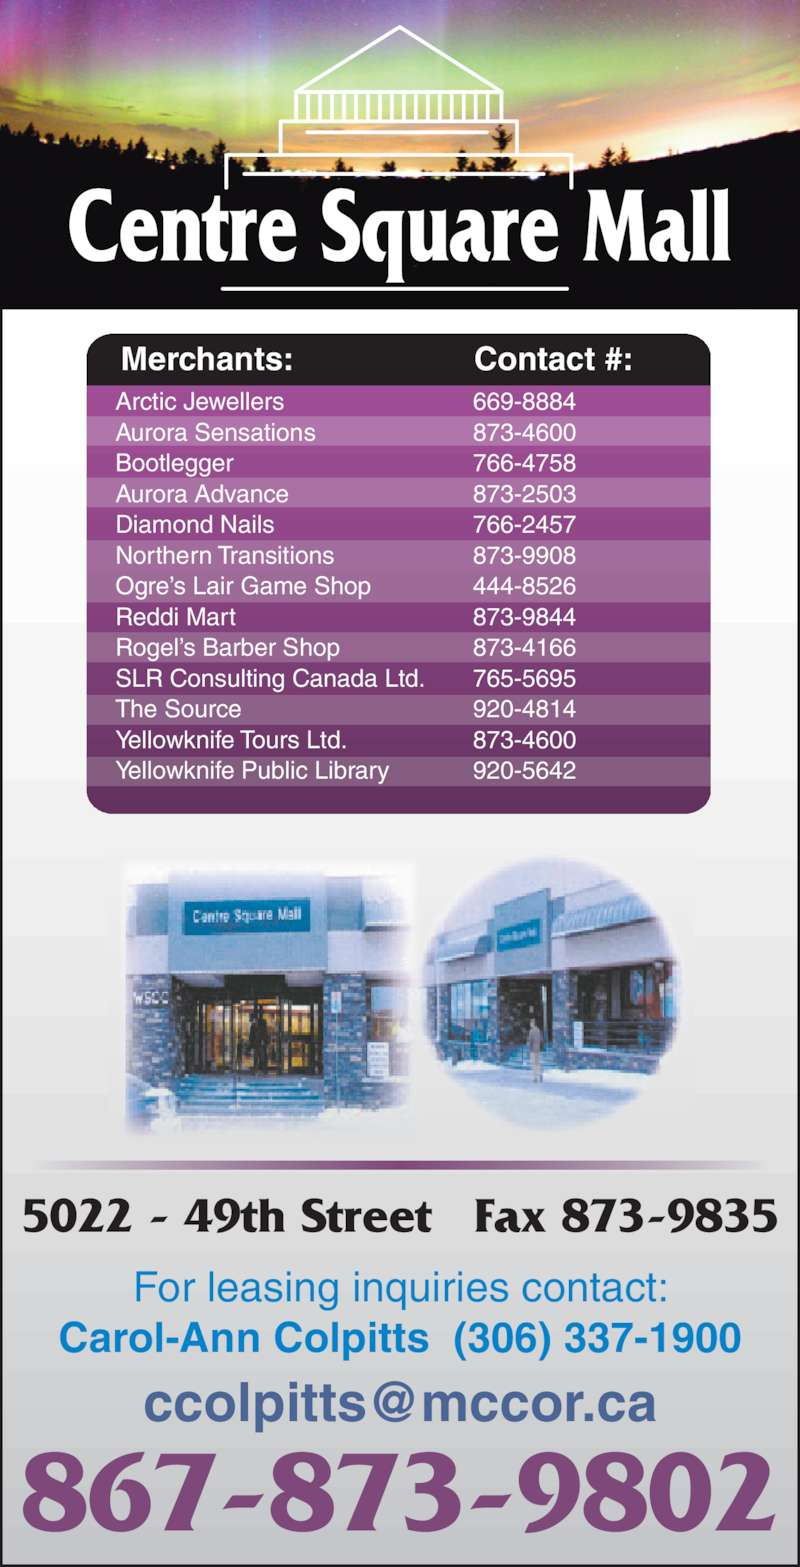 Centre Square Mall (8678739802) - Display Ad - Merchants: Contact #: Arctic Jewellers Aurora Sensations Bootlegger Aurora Advance Diamond Nails Northern Transitions Ogre's Lair Game Shop Reddi Mart Rogel's Barber Shop SLR Consulting Canada Ltd. The Source Yellowknife Tours Ltd. Yellowknife Public Library 669-8884 873-4600 766-4758 873-2503 766-2457 873-9908 444-8526 873-9844 873-4166 765-5695 920-4814 873-4600 920-5642 5022 - 49th Street Fax 873-9835 867-873-9802 For leasing inquiries contact: Carol-Ann Colpitts  (306) 337-1900